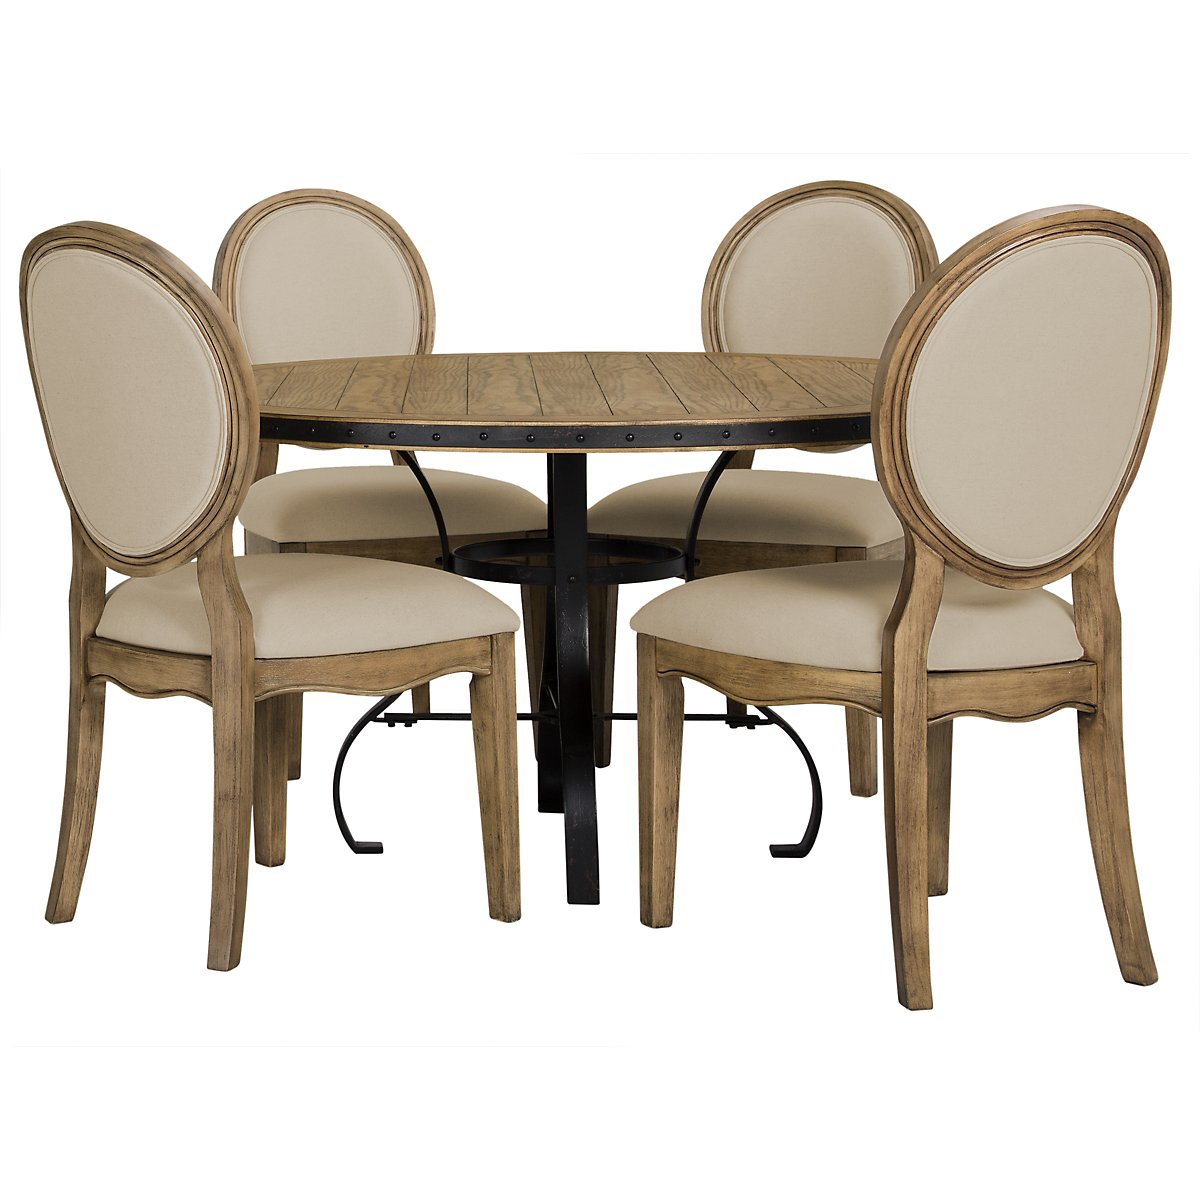 Shelbourne2 Mid Tone Round Table & 4 Round Chairs